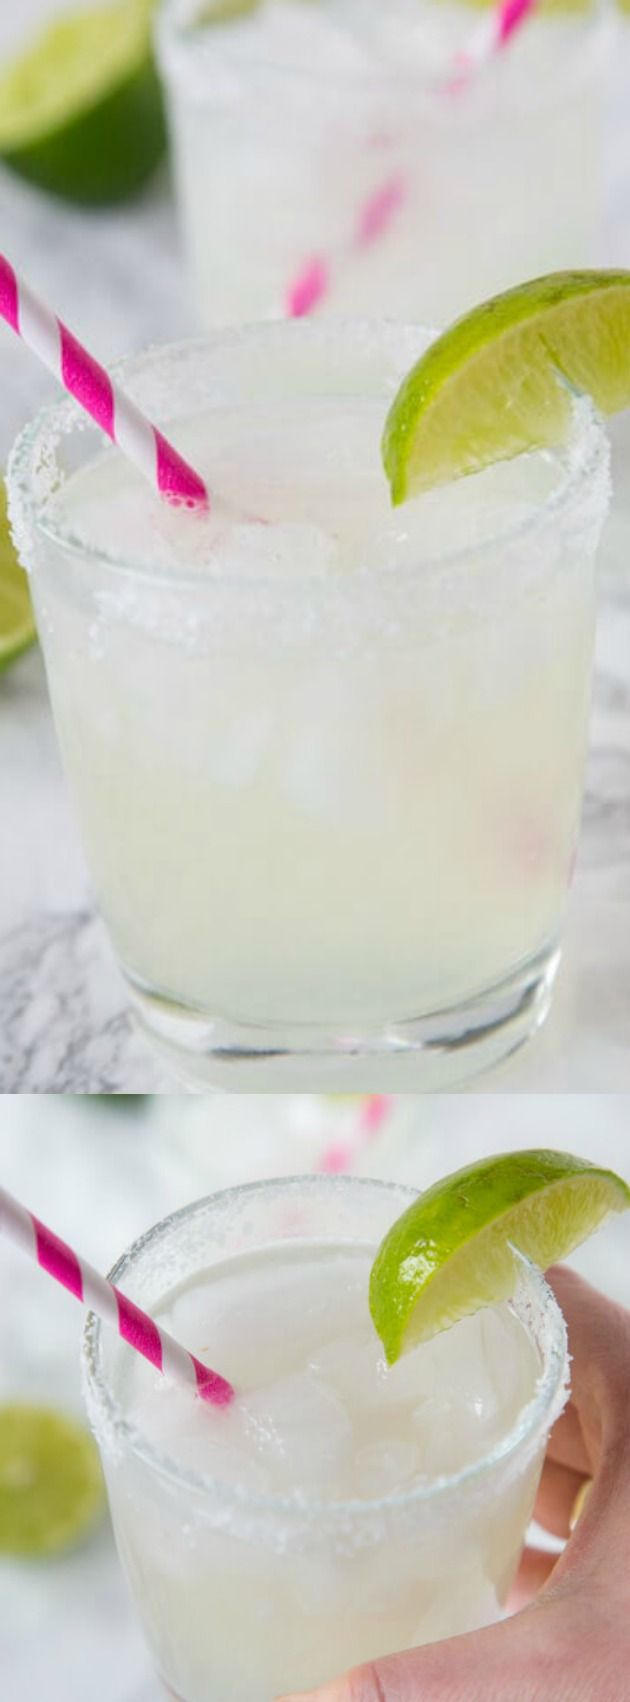 This Classic Lime Margarita on the Rocks from Dinners, Dishes, and Desserts is sweet, tart, and super refreshing. It is a great drink for summer parties or just because!